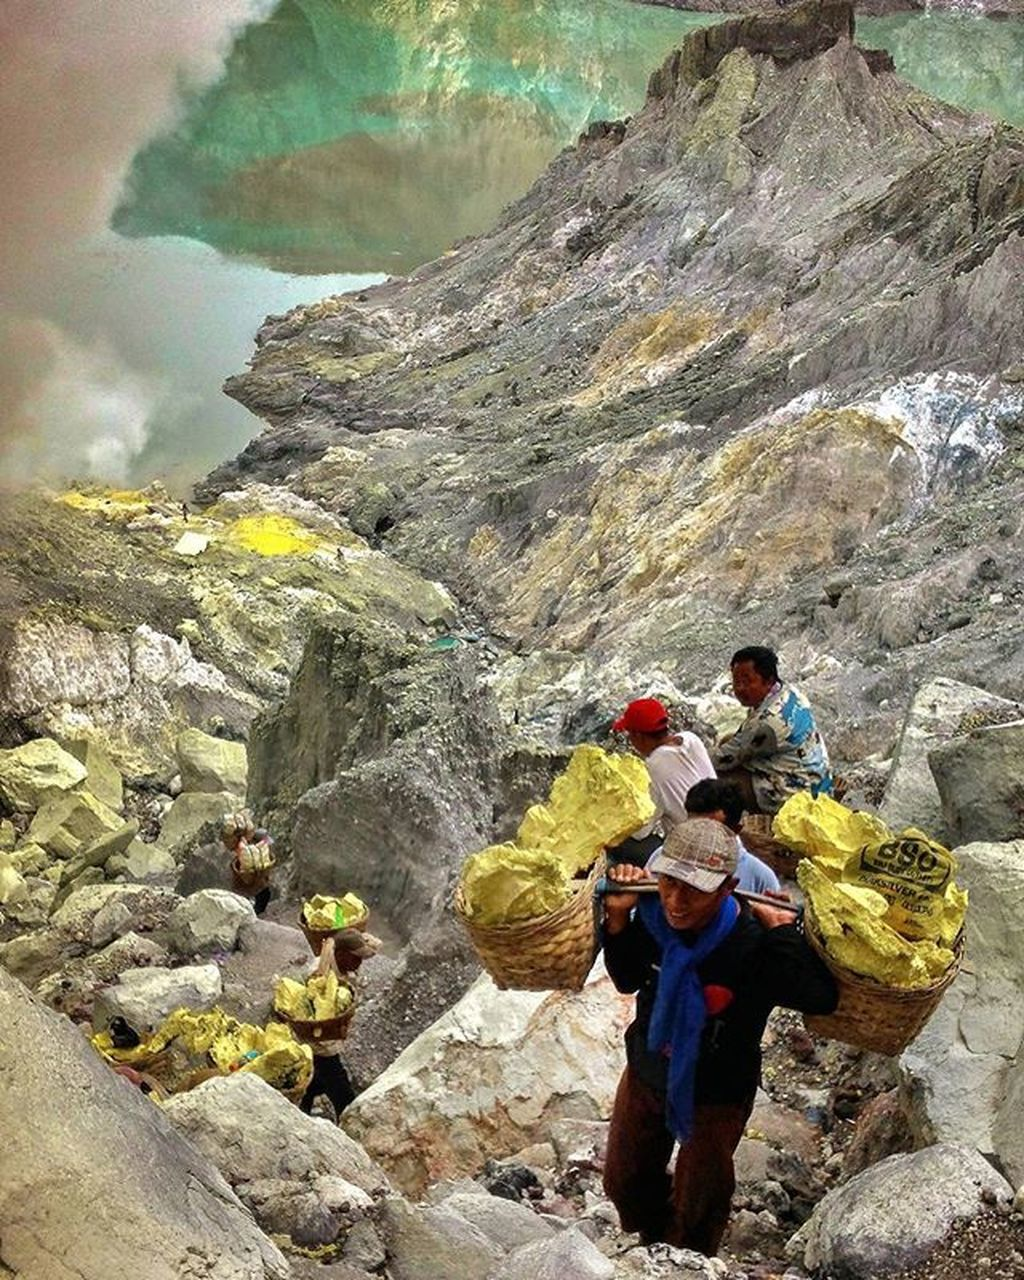 rock - object, real people, mountain, lifestyles, full length, men, two people, basket, leisure activity, nature, day, togetherness, outdoors, adventure, women, standing, vacations, beauty in nature, water, sky, people